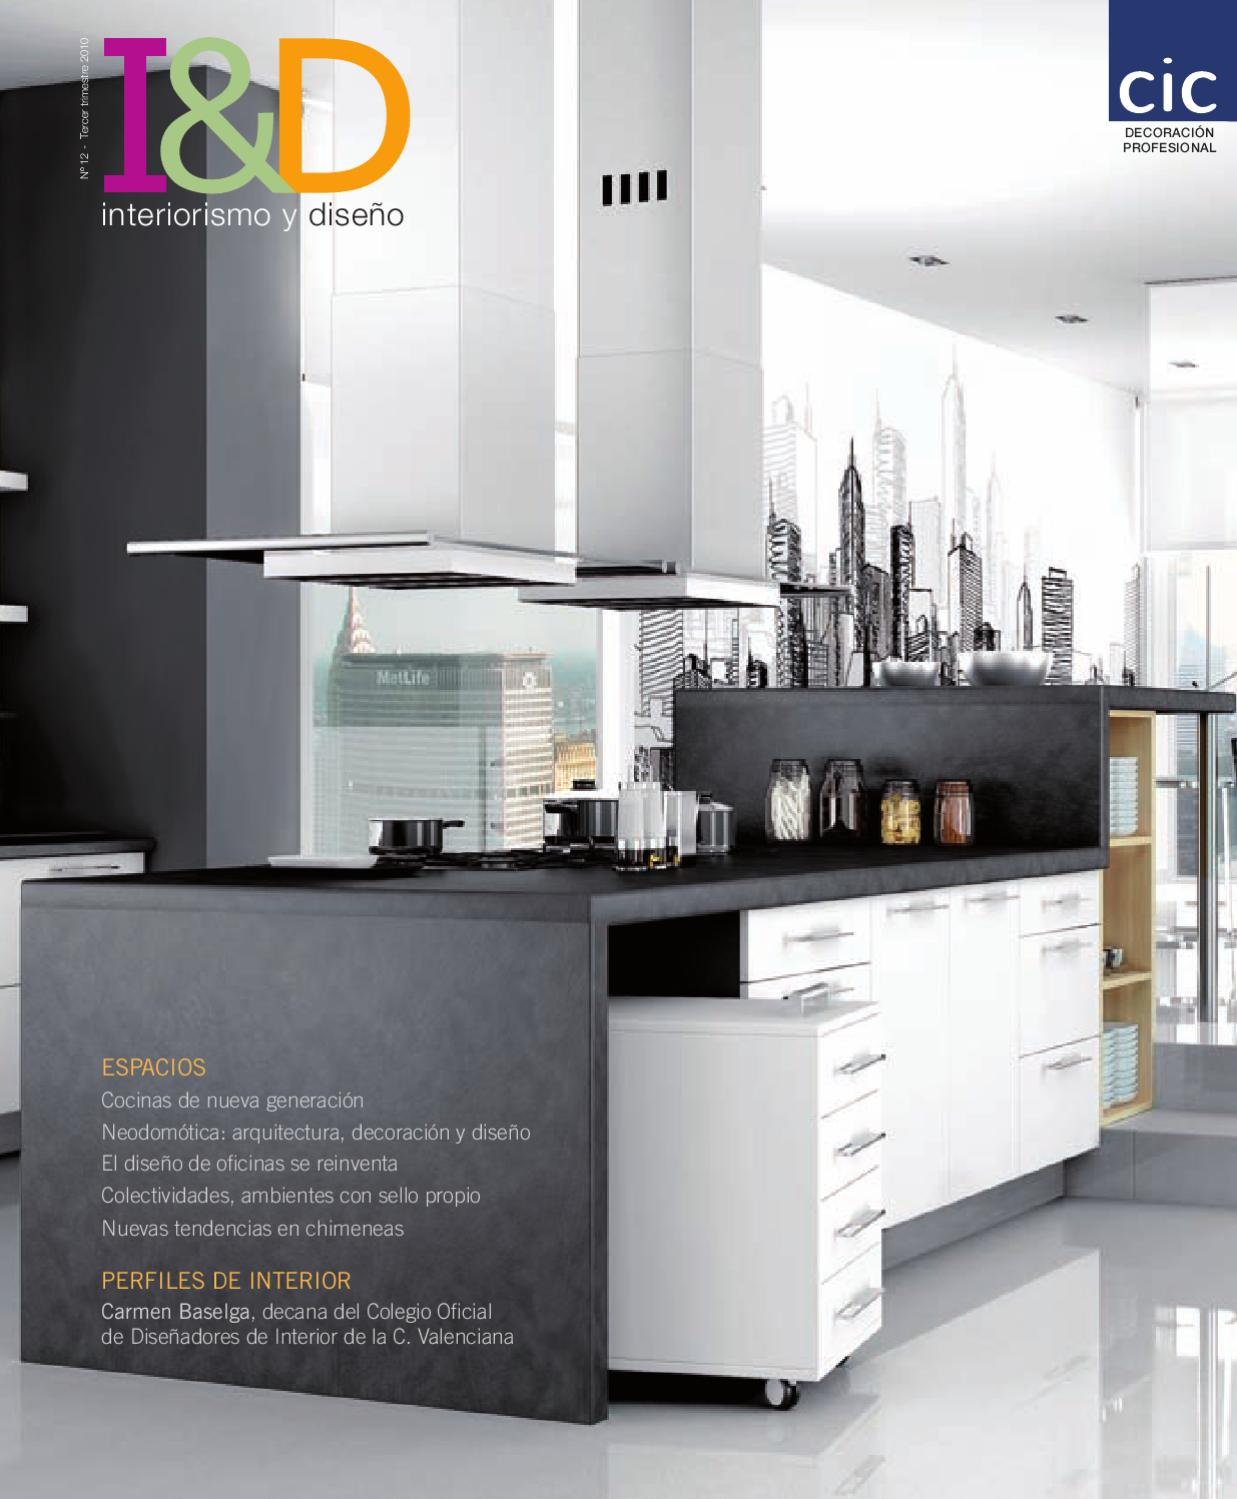 Interiorismo y dise o 12 by digital newspapers s l issuu - Interiorismo y diseno ...